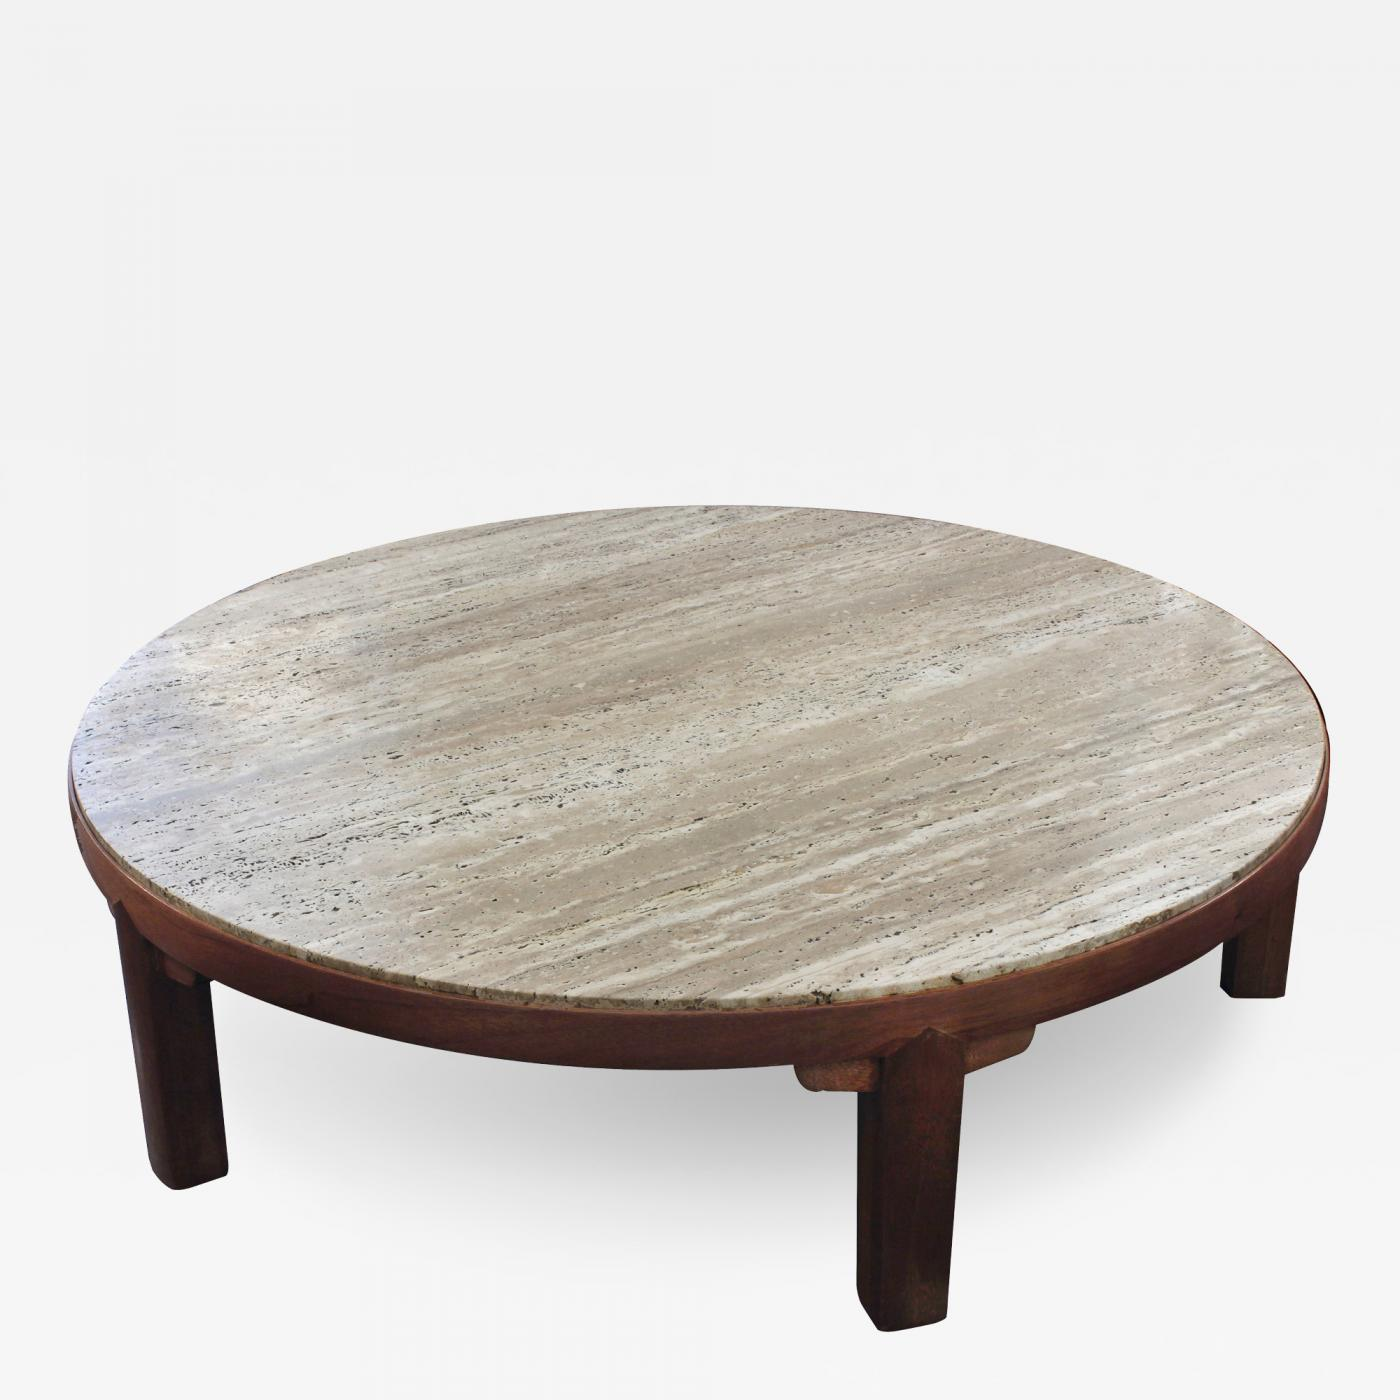 Edward Wormley Coffee Table with Travertine Top by Edward